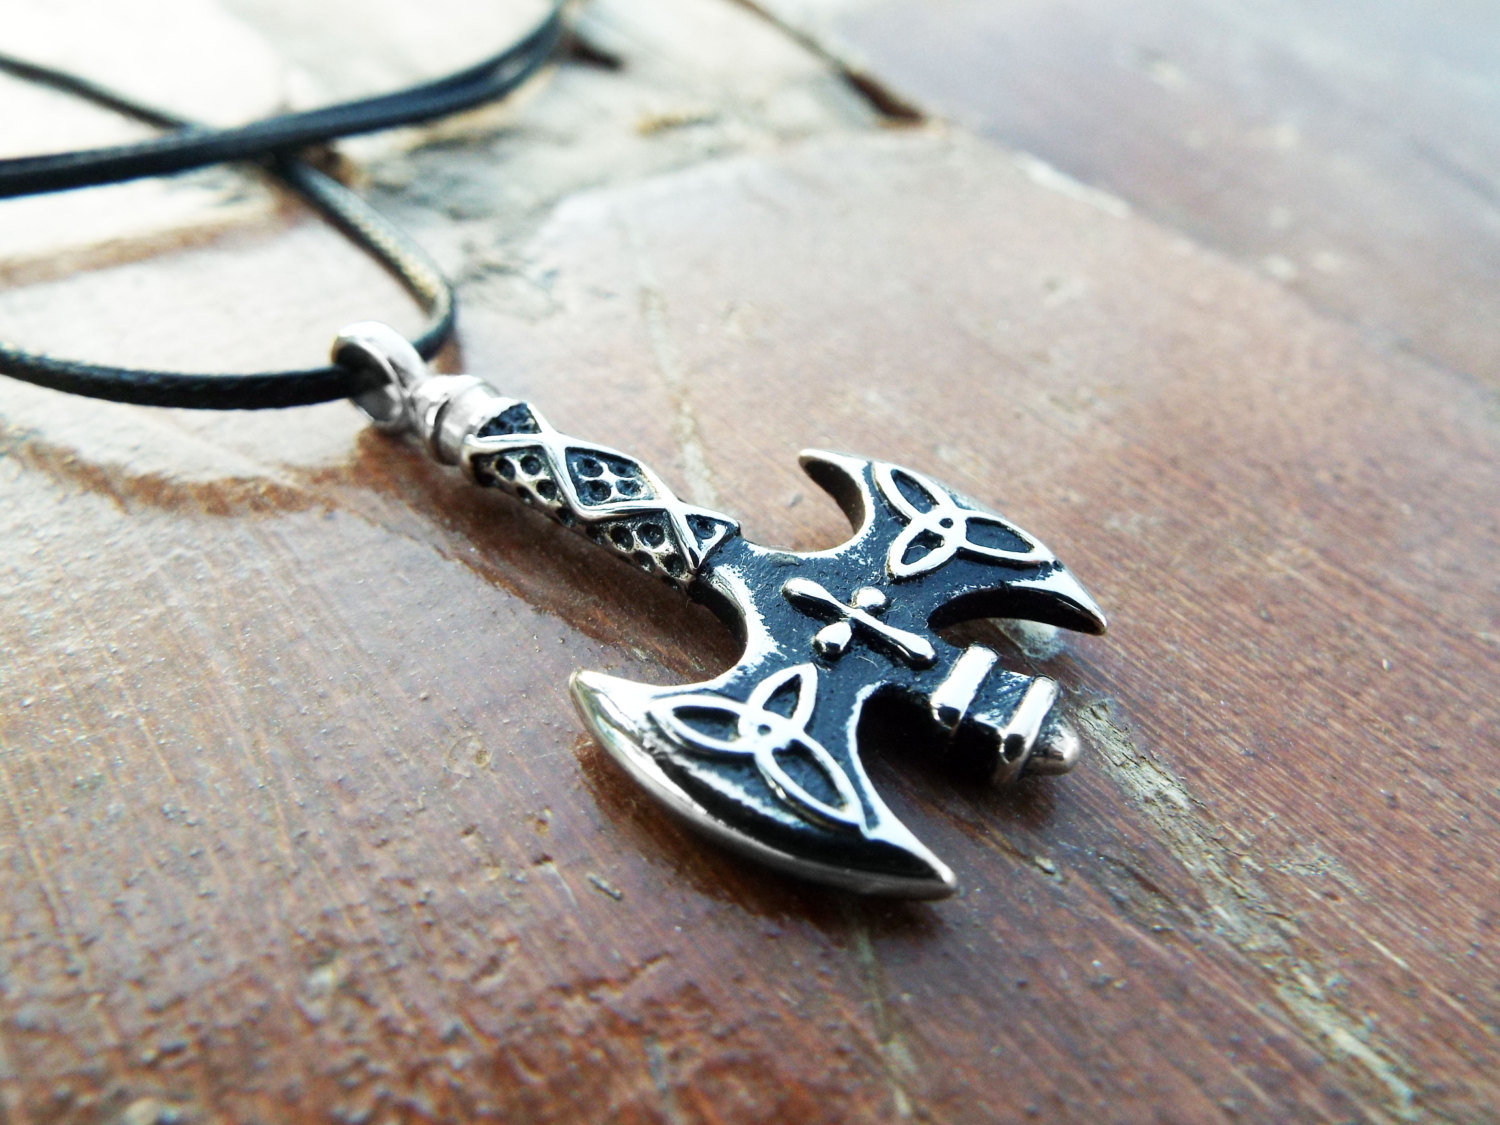 Labrys Pendant Axe Silver Double Axe Symbol Sterling 925 Triquetra Cross Gothic Handmade Ancient Greek Necklace Jewelry